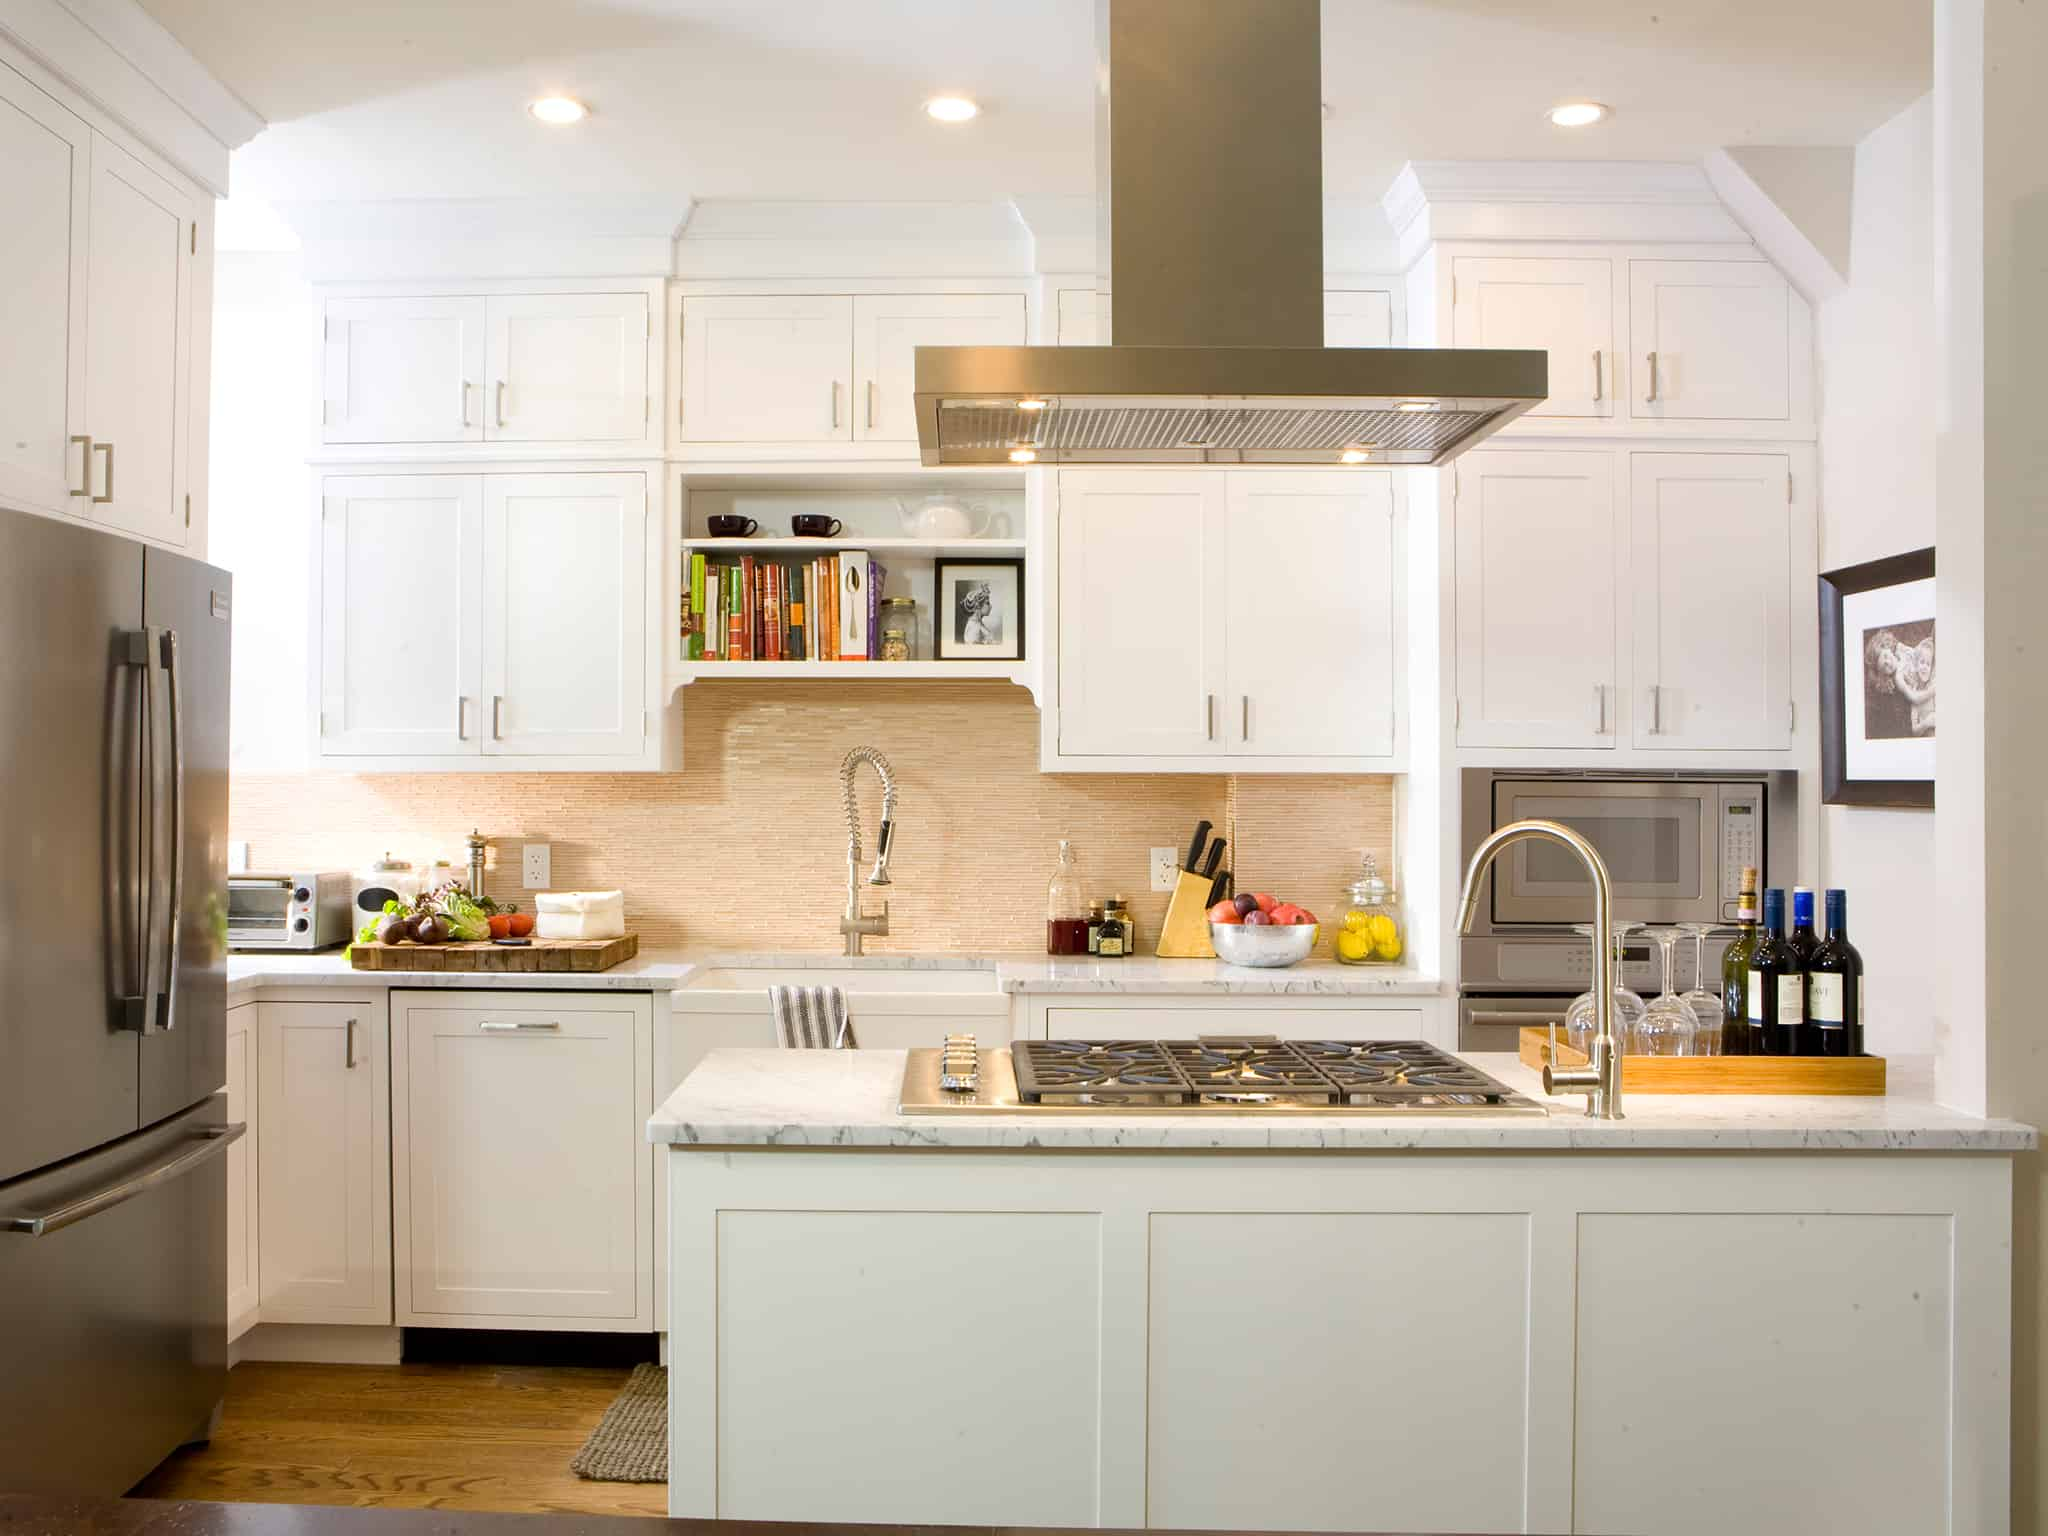 37 bright white kitchens to emulate your own after for What is my kitchen style